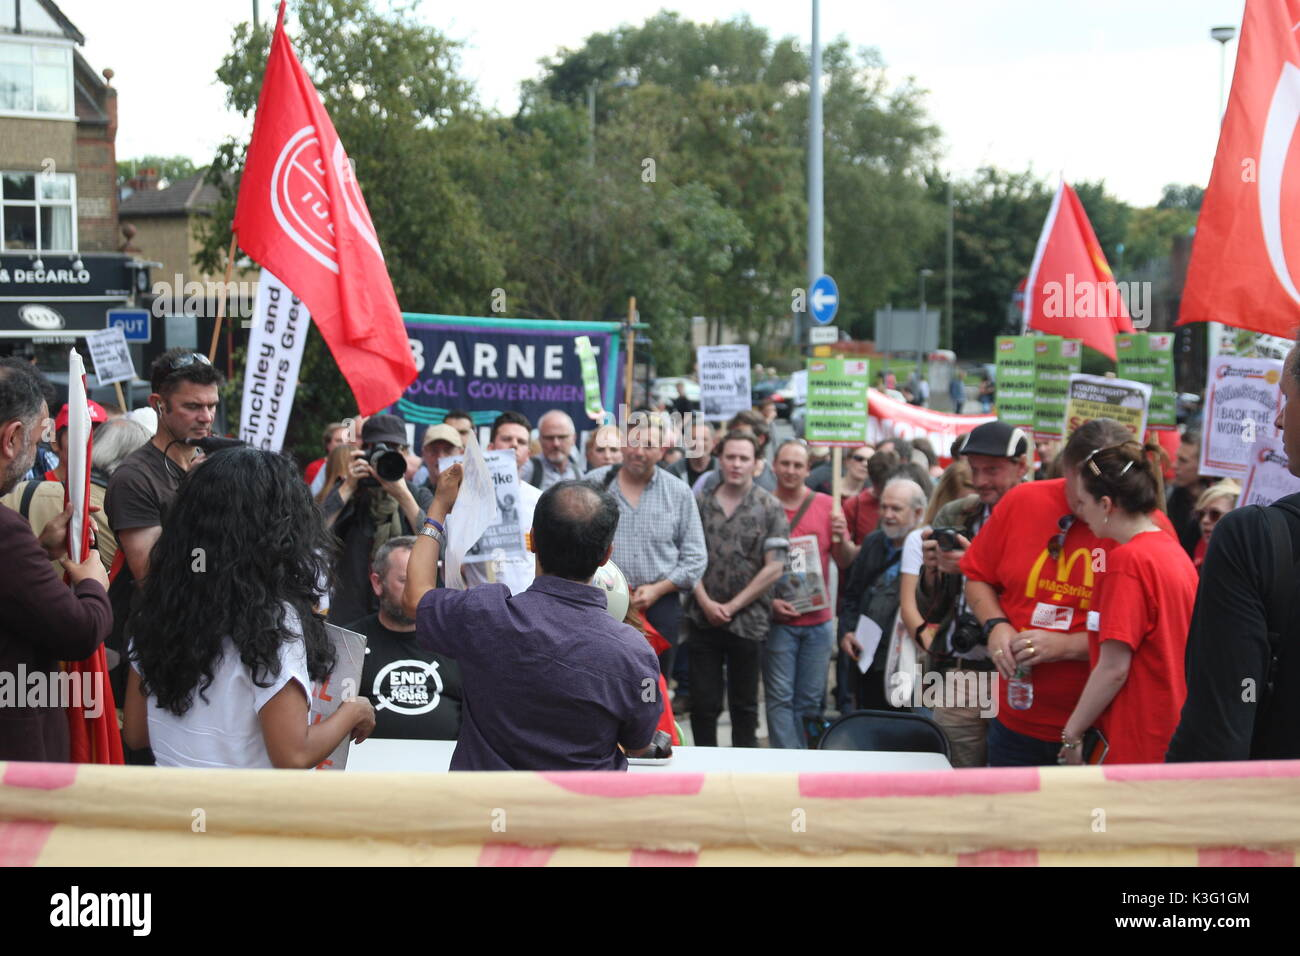 London, UK, 2nd September 2017.Mc Donalds workers and their supporters rally outside the company's HQ in East Finchley. The Bakers Food and Allied Workers Union (BFAWU) organised the rally which precedes a strike at two McDonalds branches on Monday. Roland Ravenhill/Alamy Live News - Stock Image